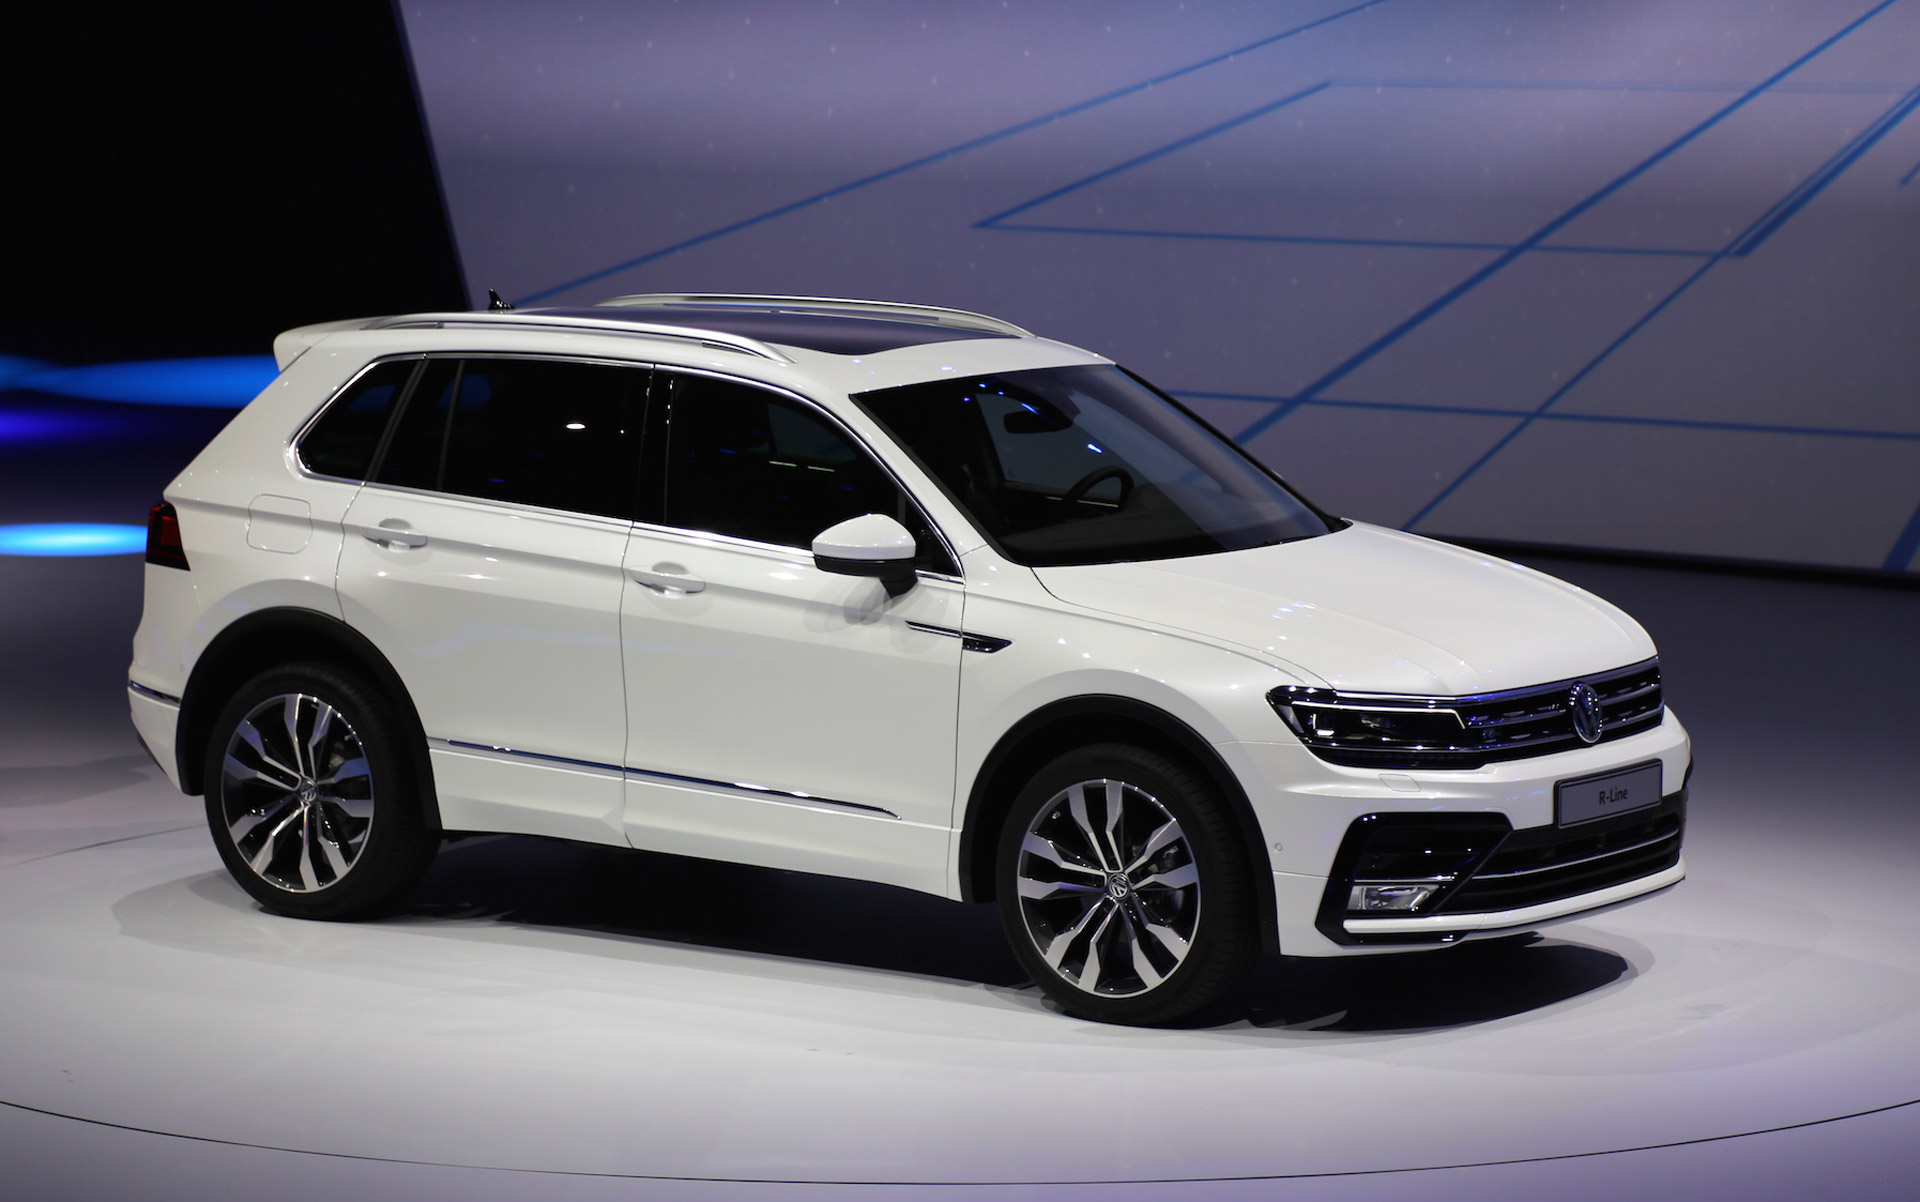 Vw Tiguan Suv Aims For U S With Third Row Higher Mpg